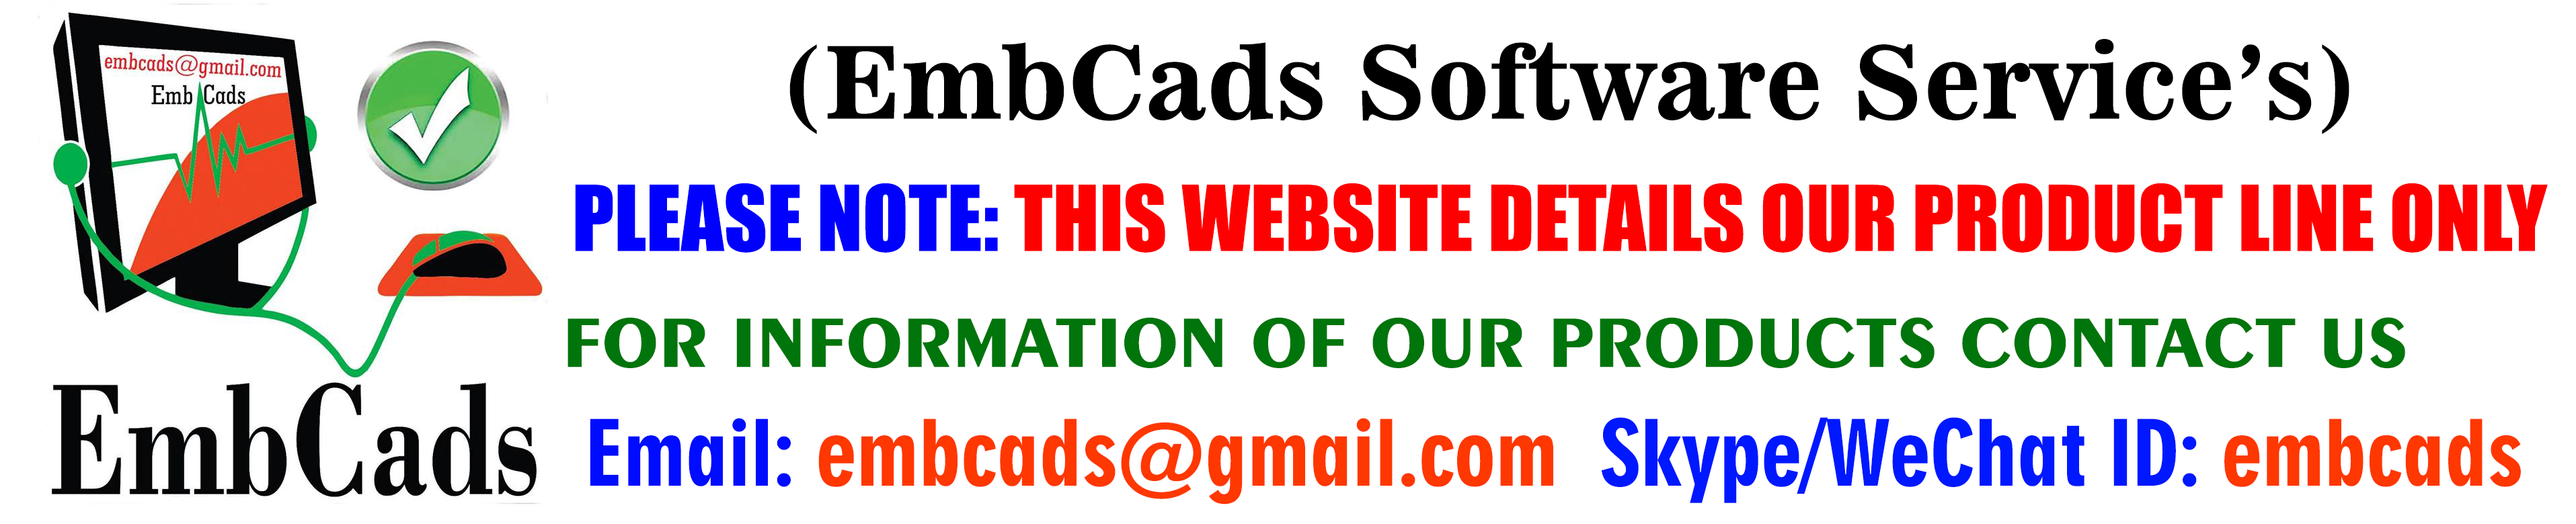 EMBCADS SOFTWARE SERVICES